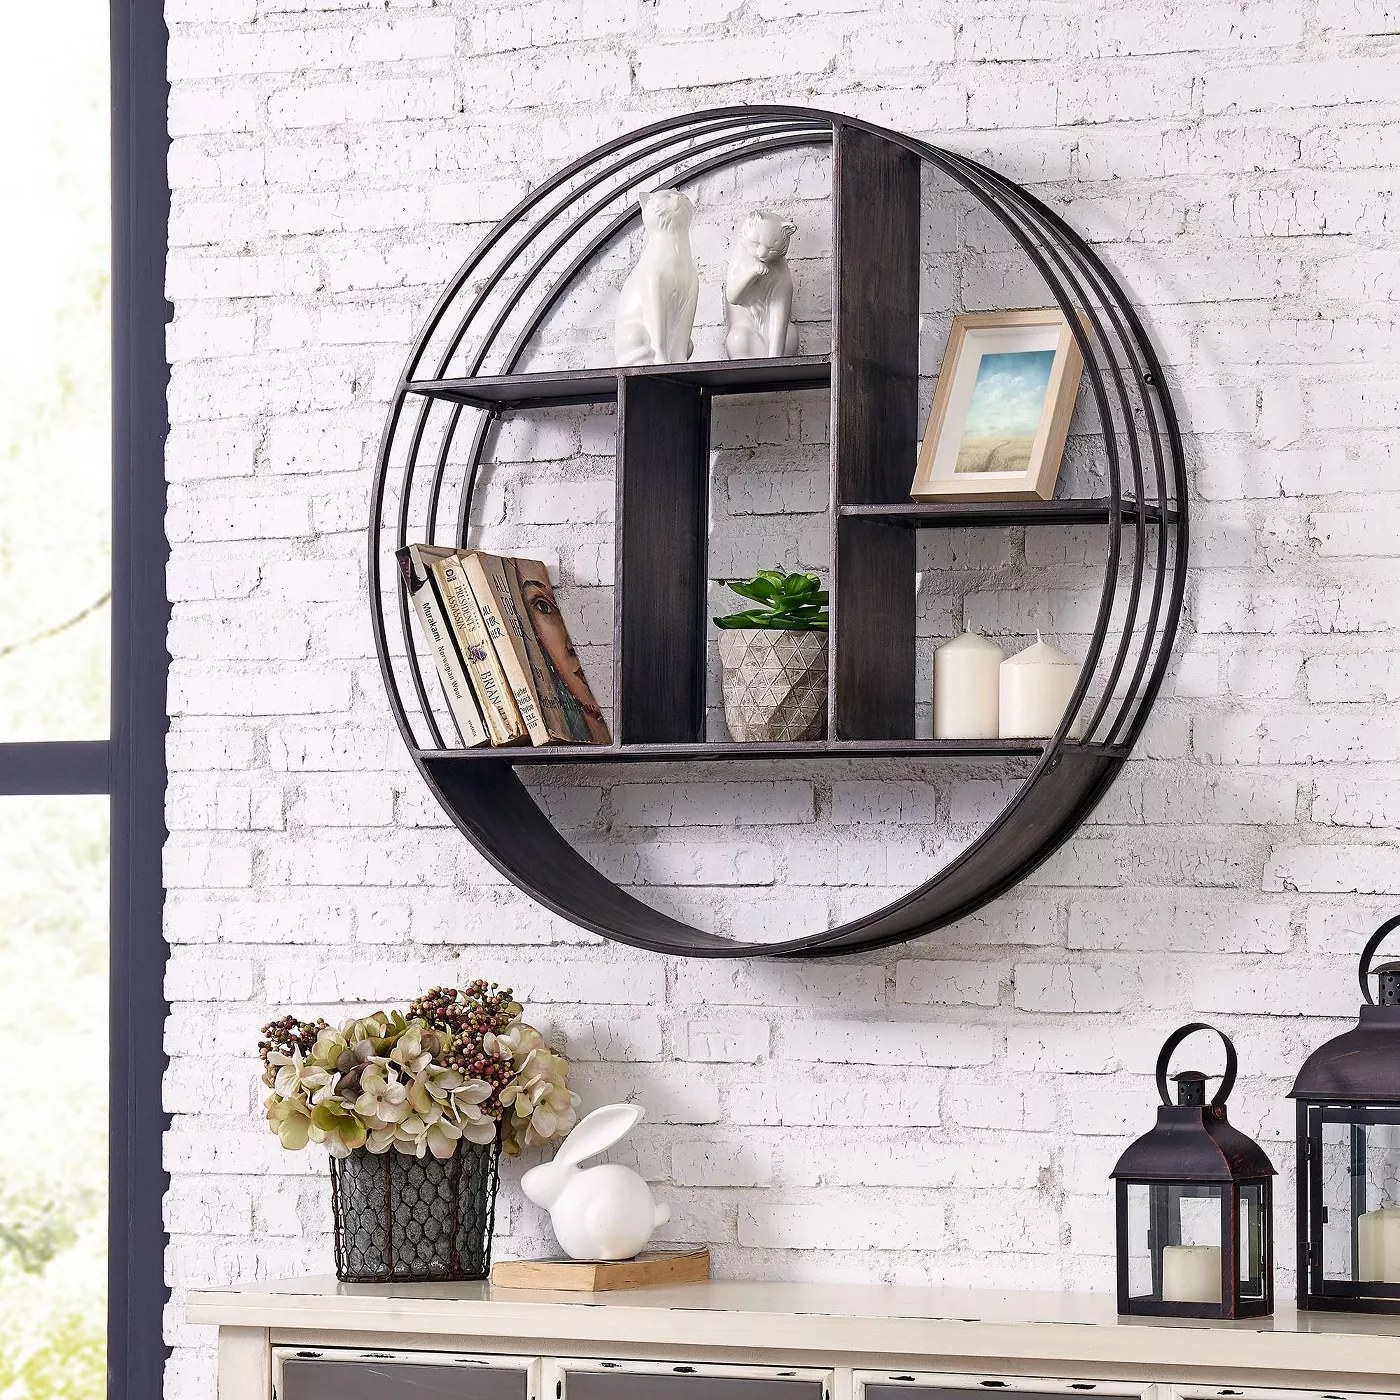 The circular shelf with several different compartments for storage